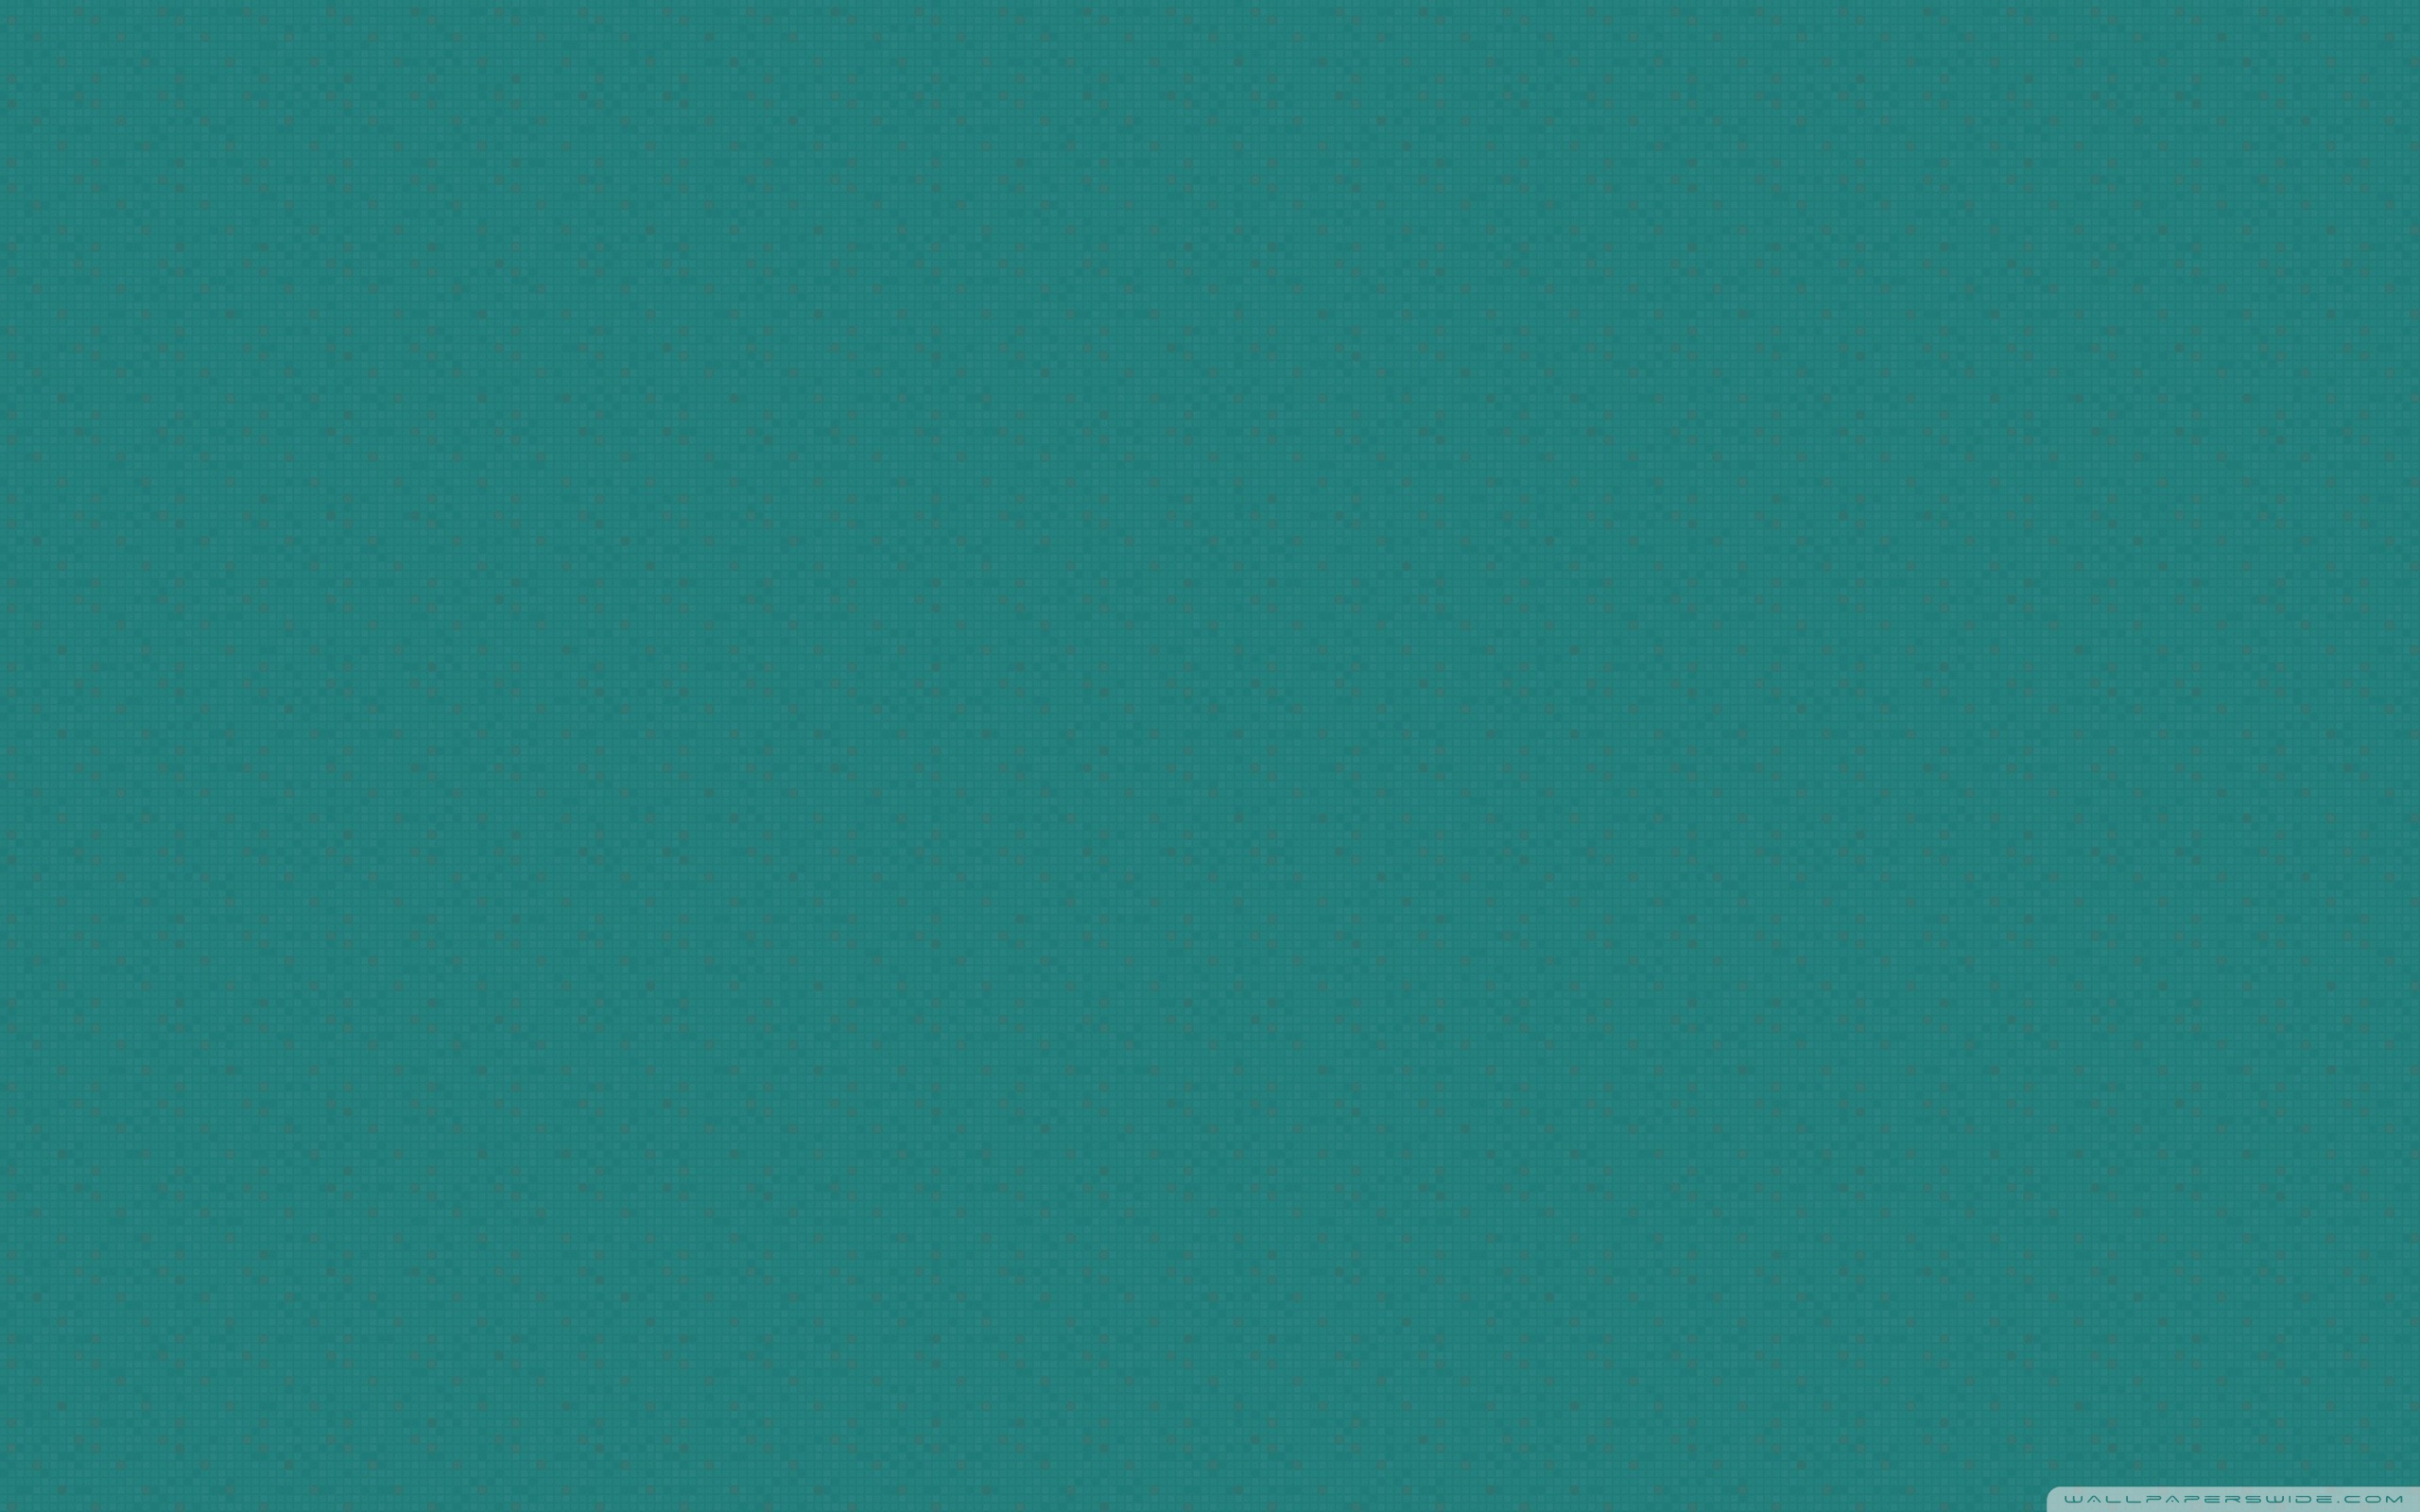 Turquoise Green Color